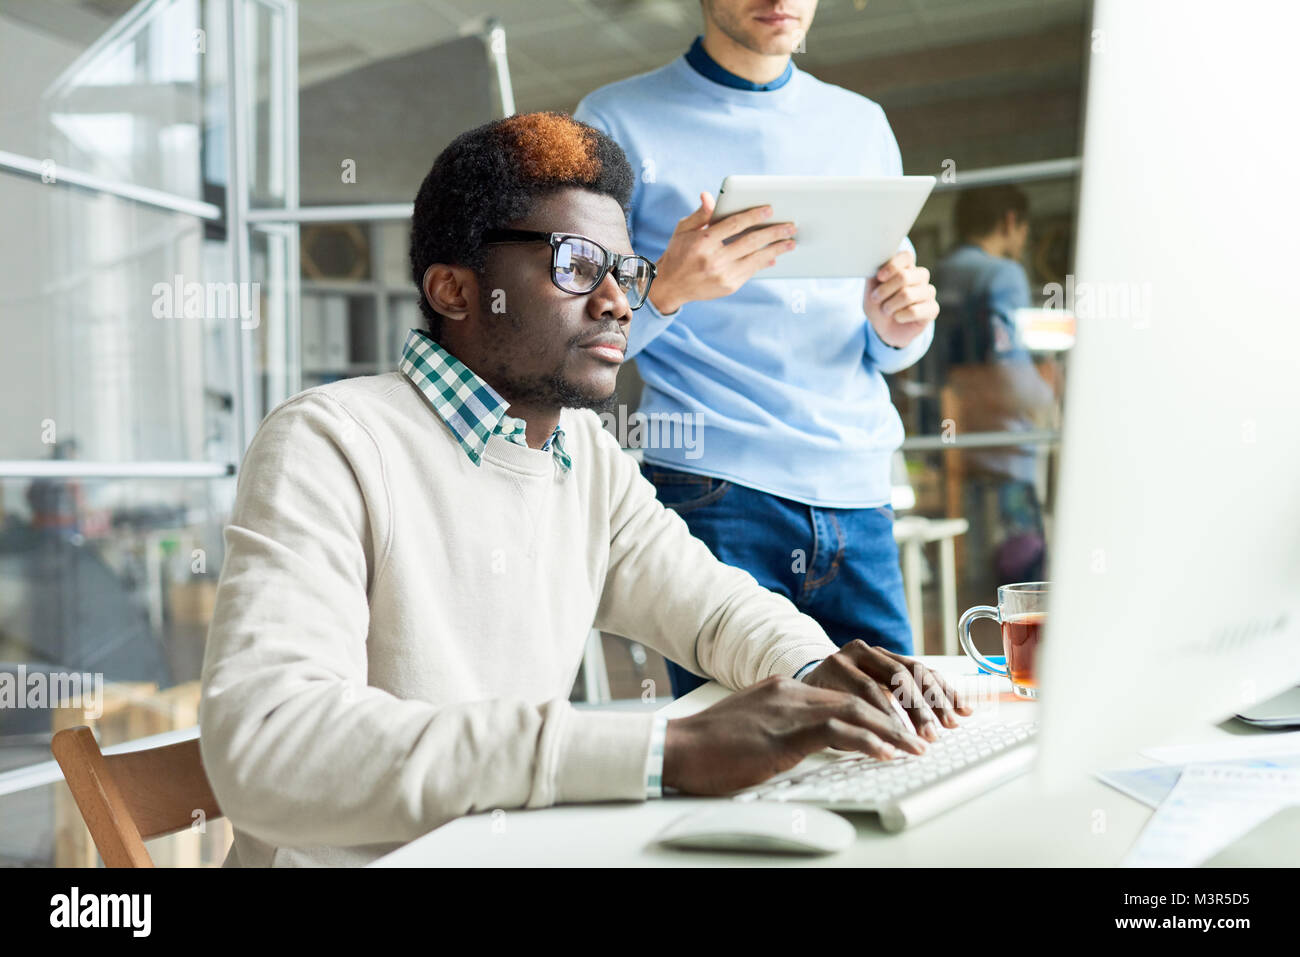 Two Web Developers Working on Code - Stock Image